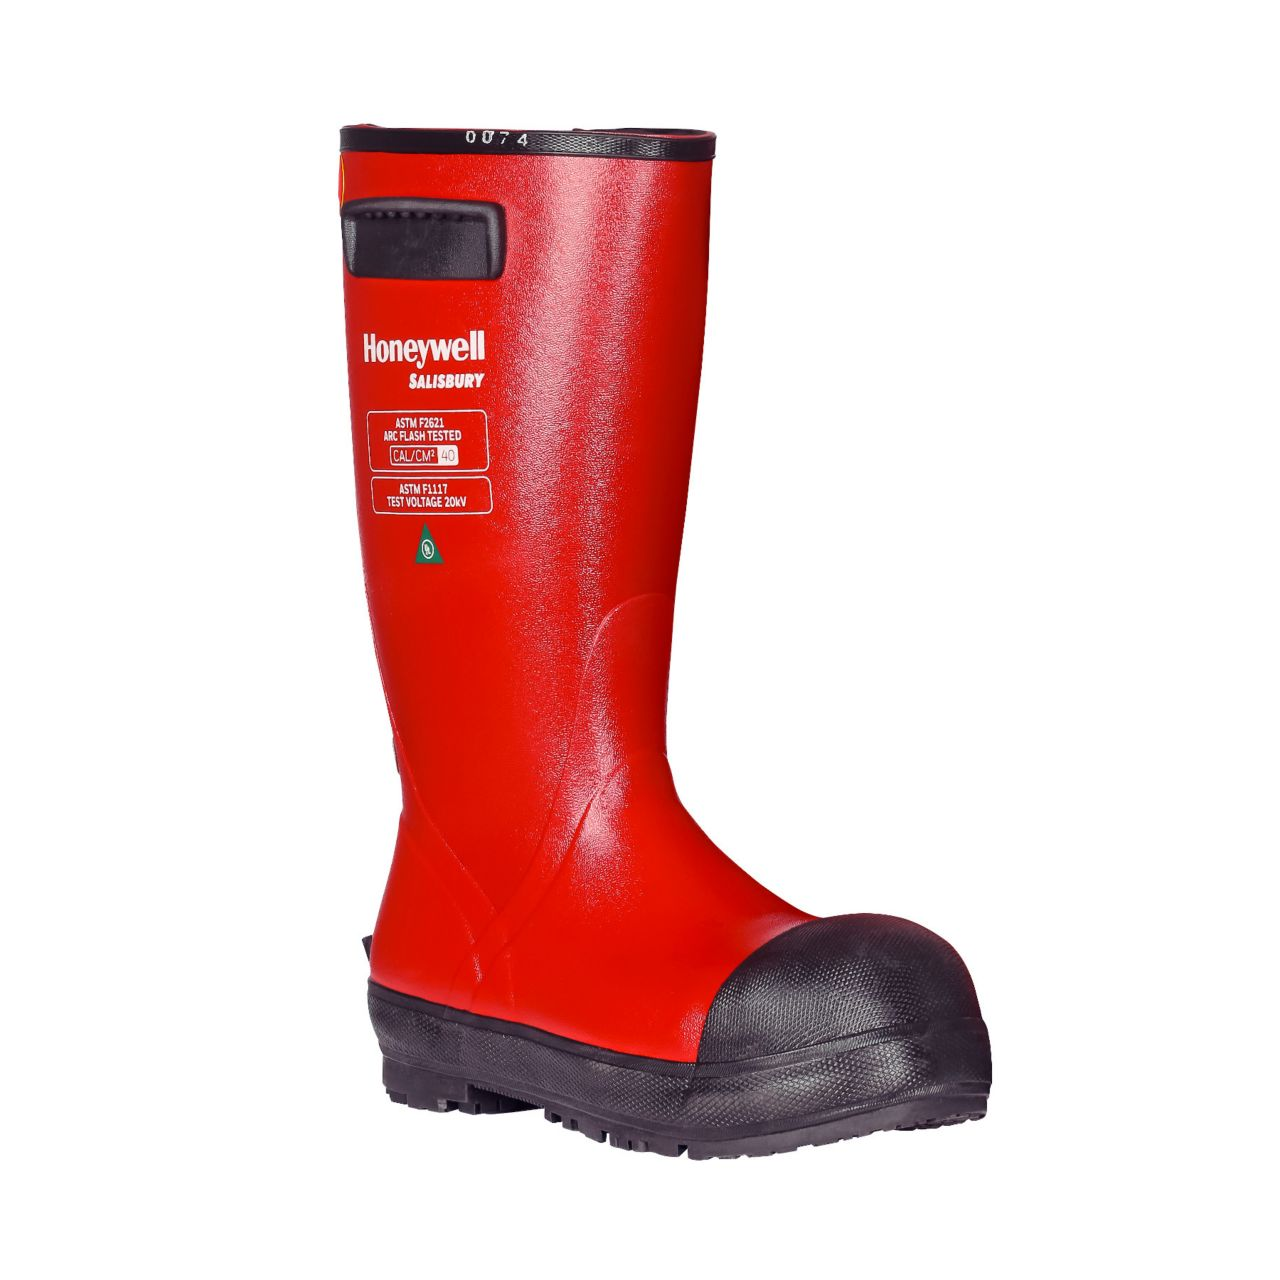 sps-his-electrigrip-thermal-boots-right-angle